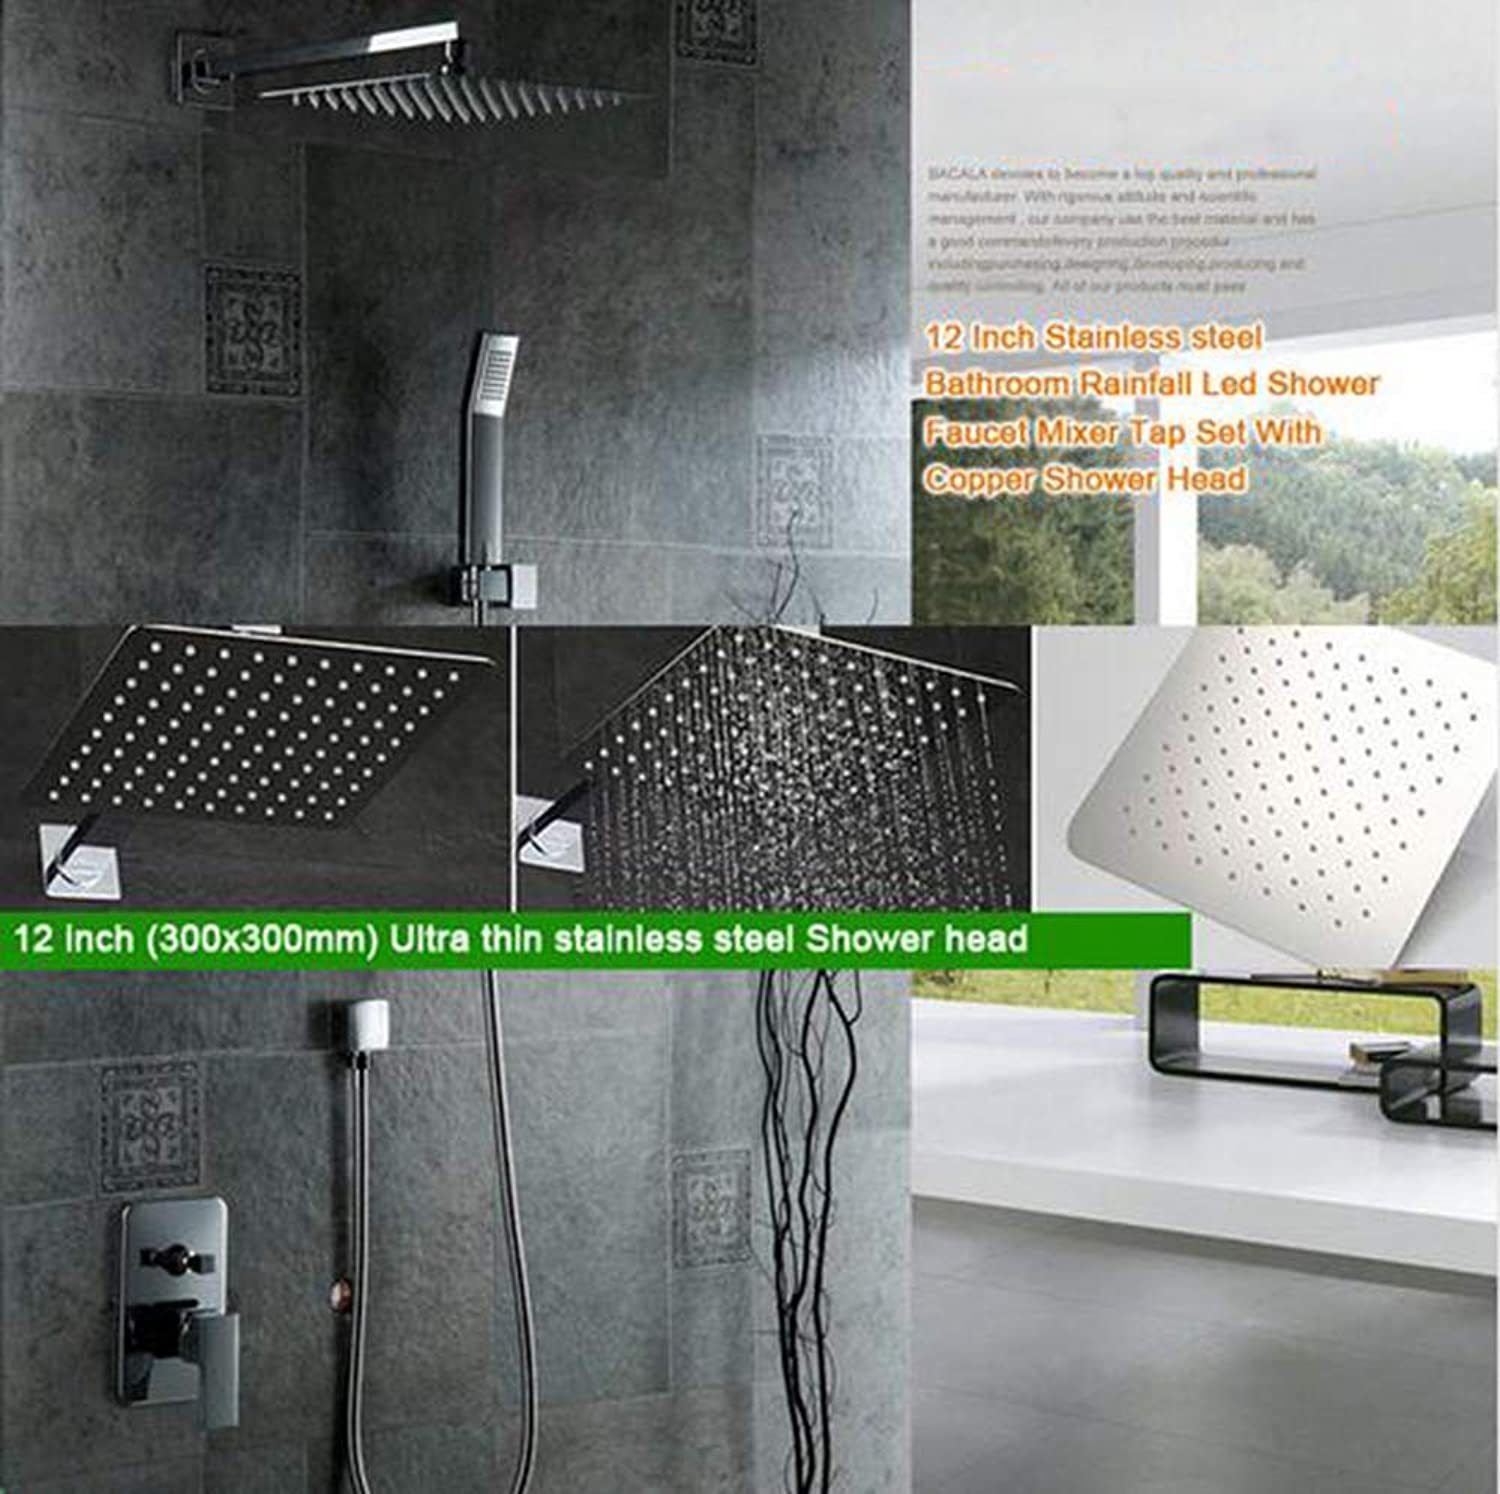 MICHEN Rain Mixer Shower Set Wall Mounted Rainfall Shower Head System,12inch